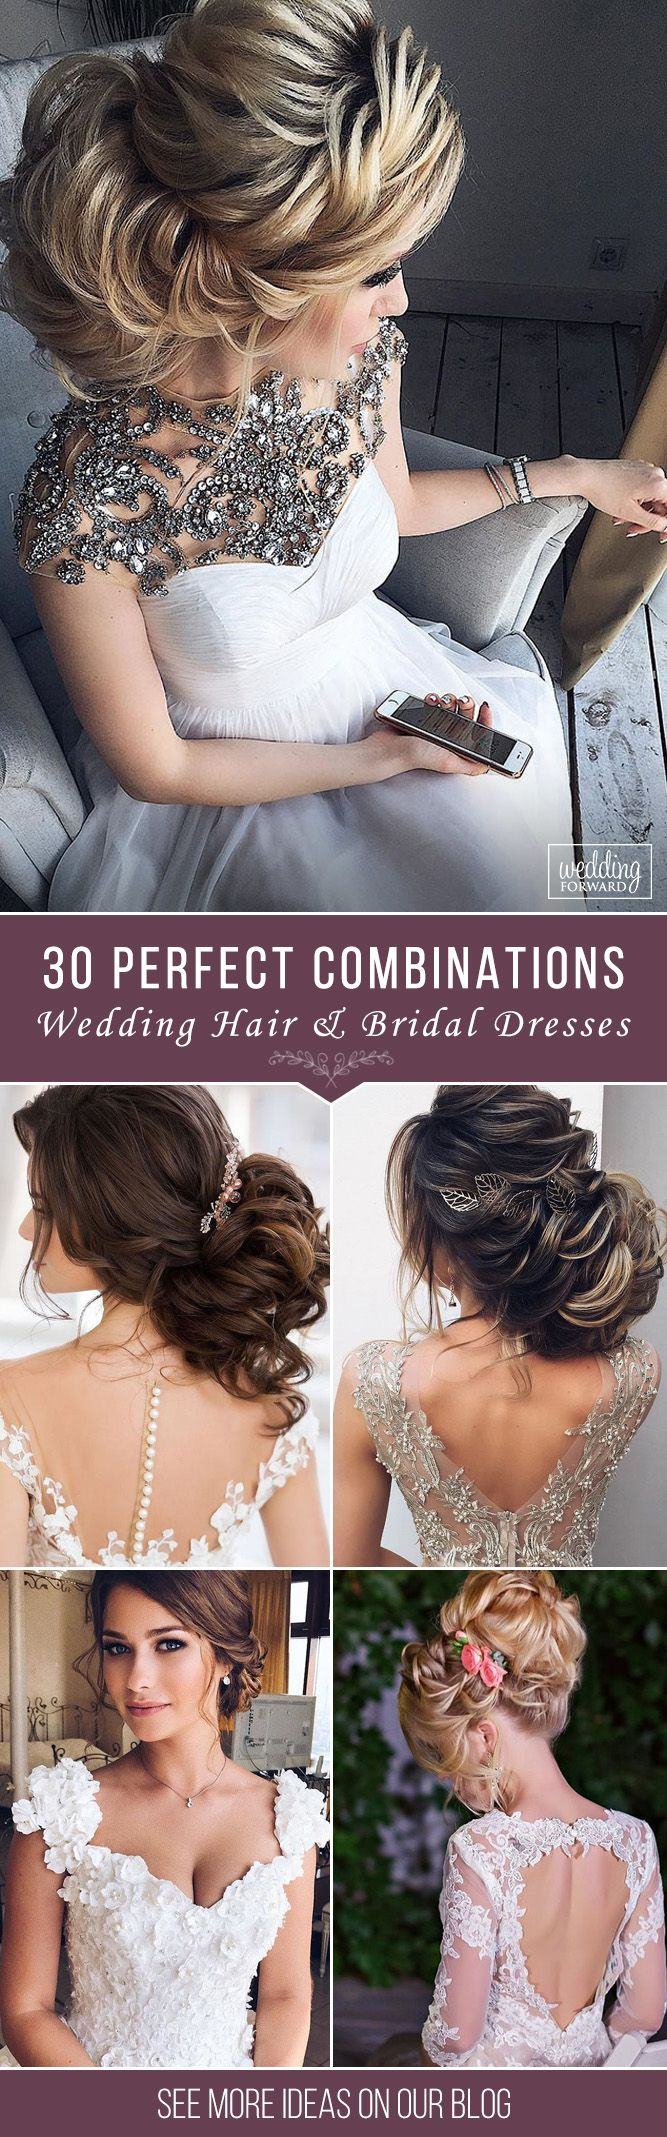 30 Perfect Combinations Of Wedding Hairstyles And Bridal Dresses ❤ It can be r...